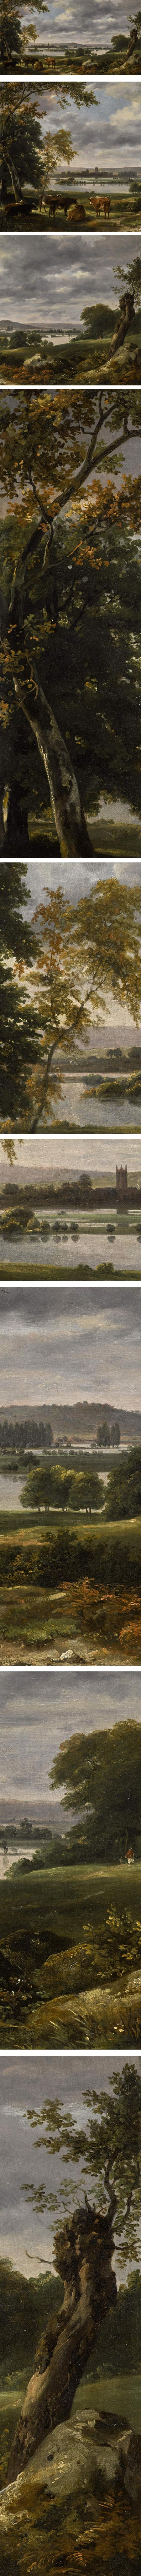 Dedham Vale With The River Stour In Flood From The Grounds Of Old Hall, East Bergholt, John Constable, rediscovered Constable landscape